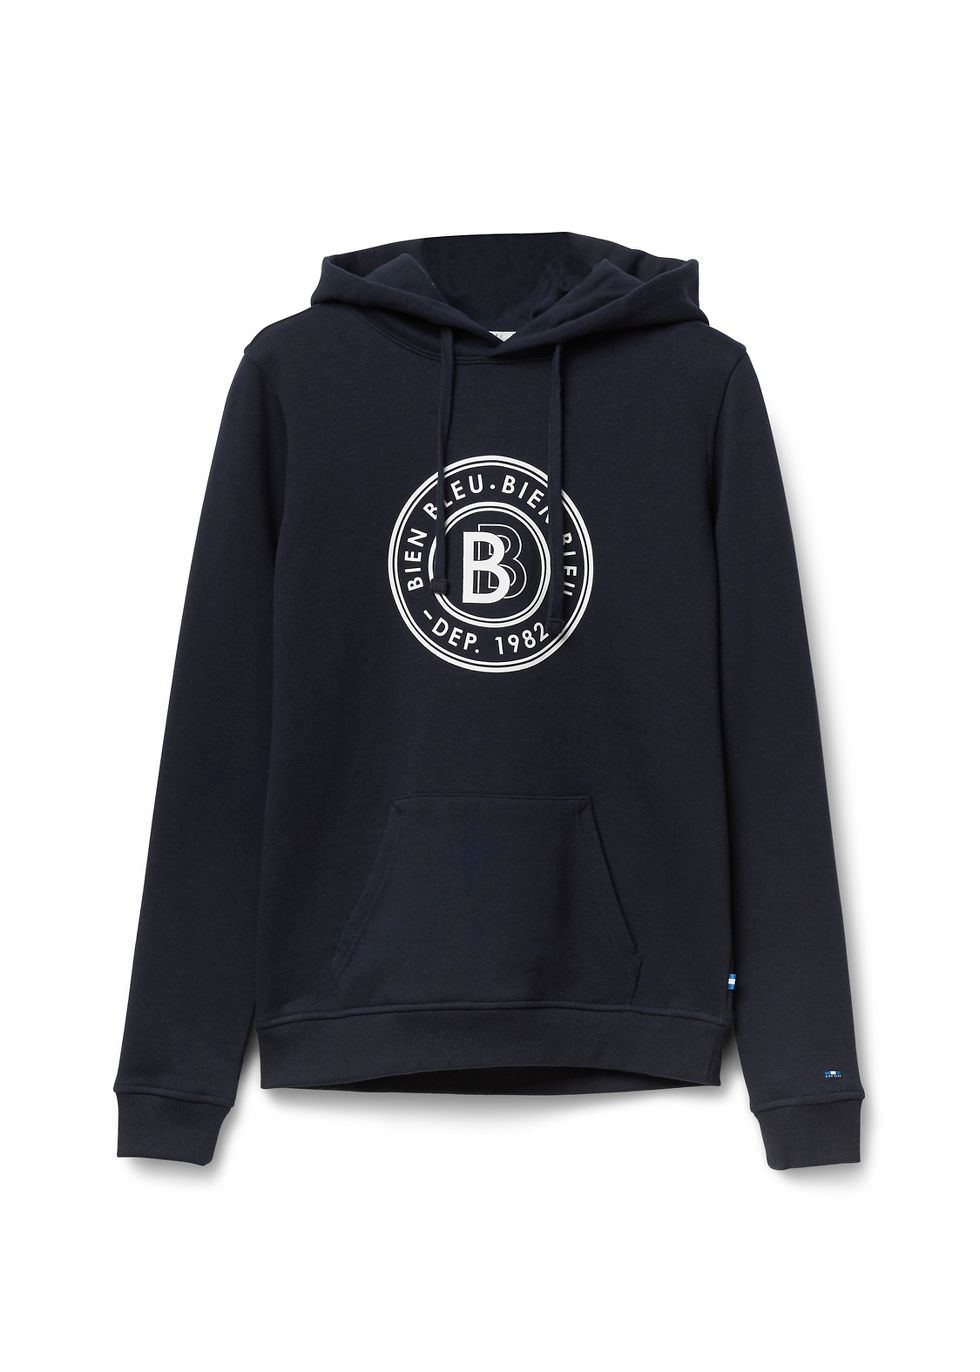 Hooded Sweater donkerblauw